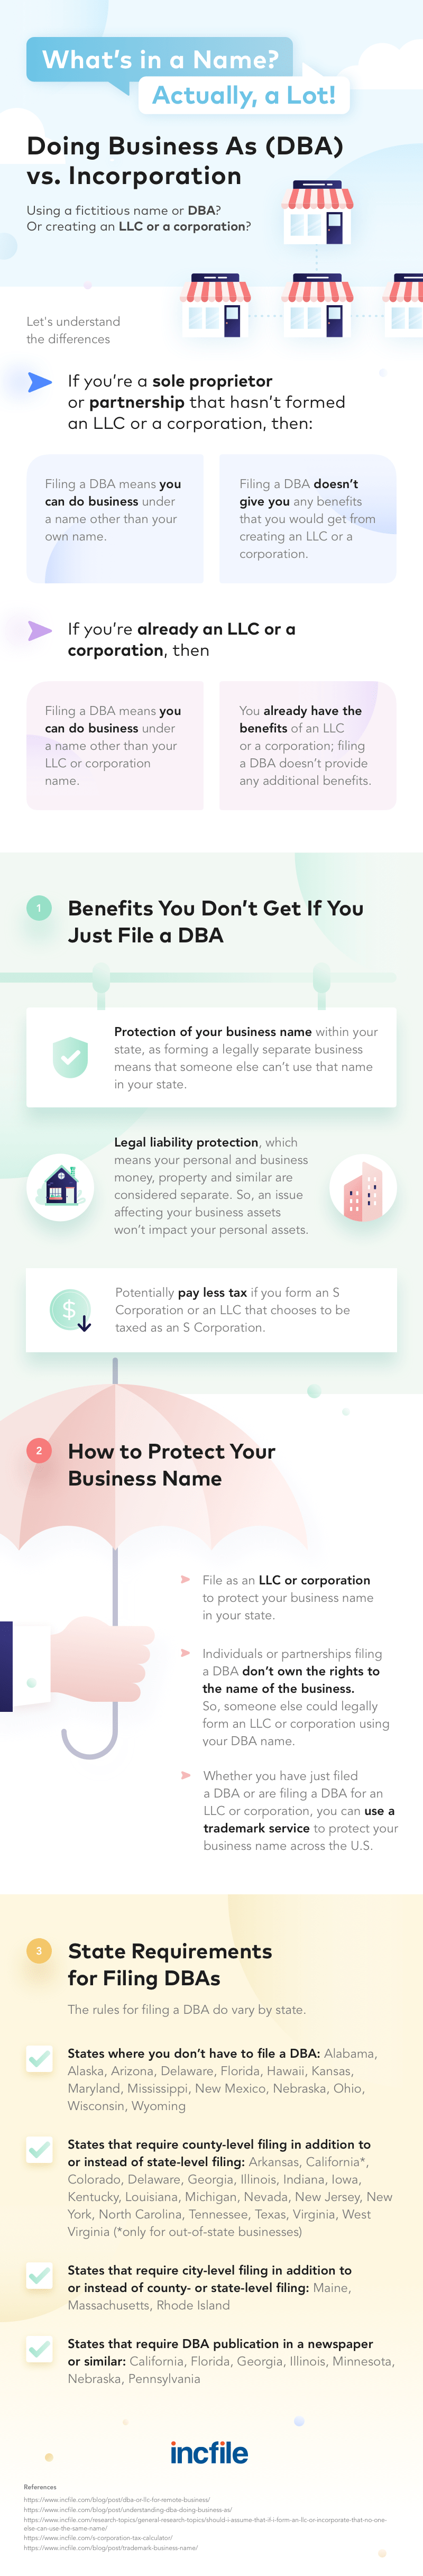 dba-vs-llc-infographic-plaza